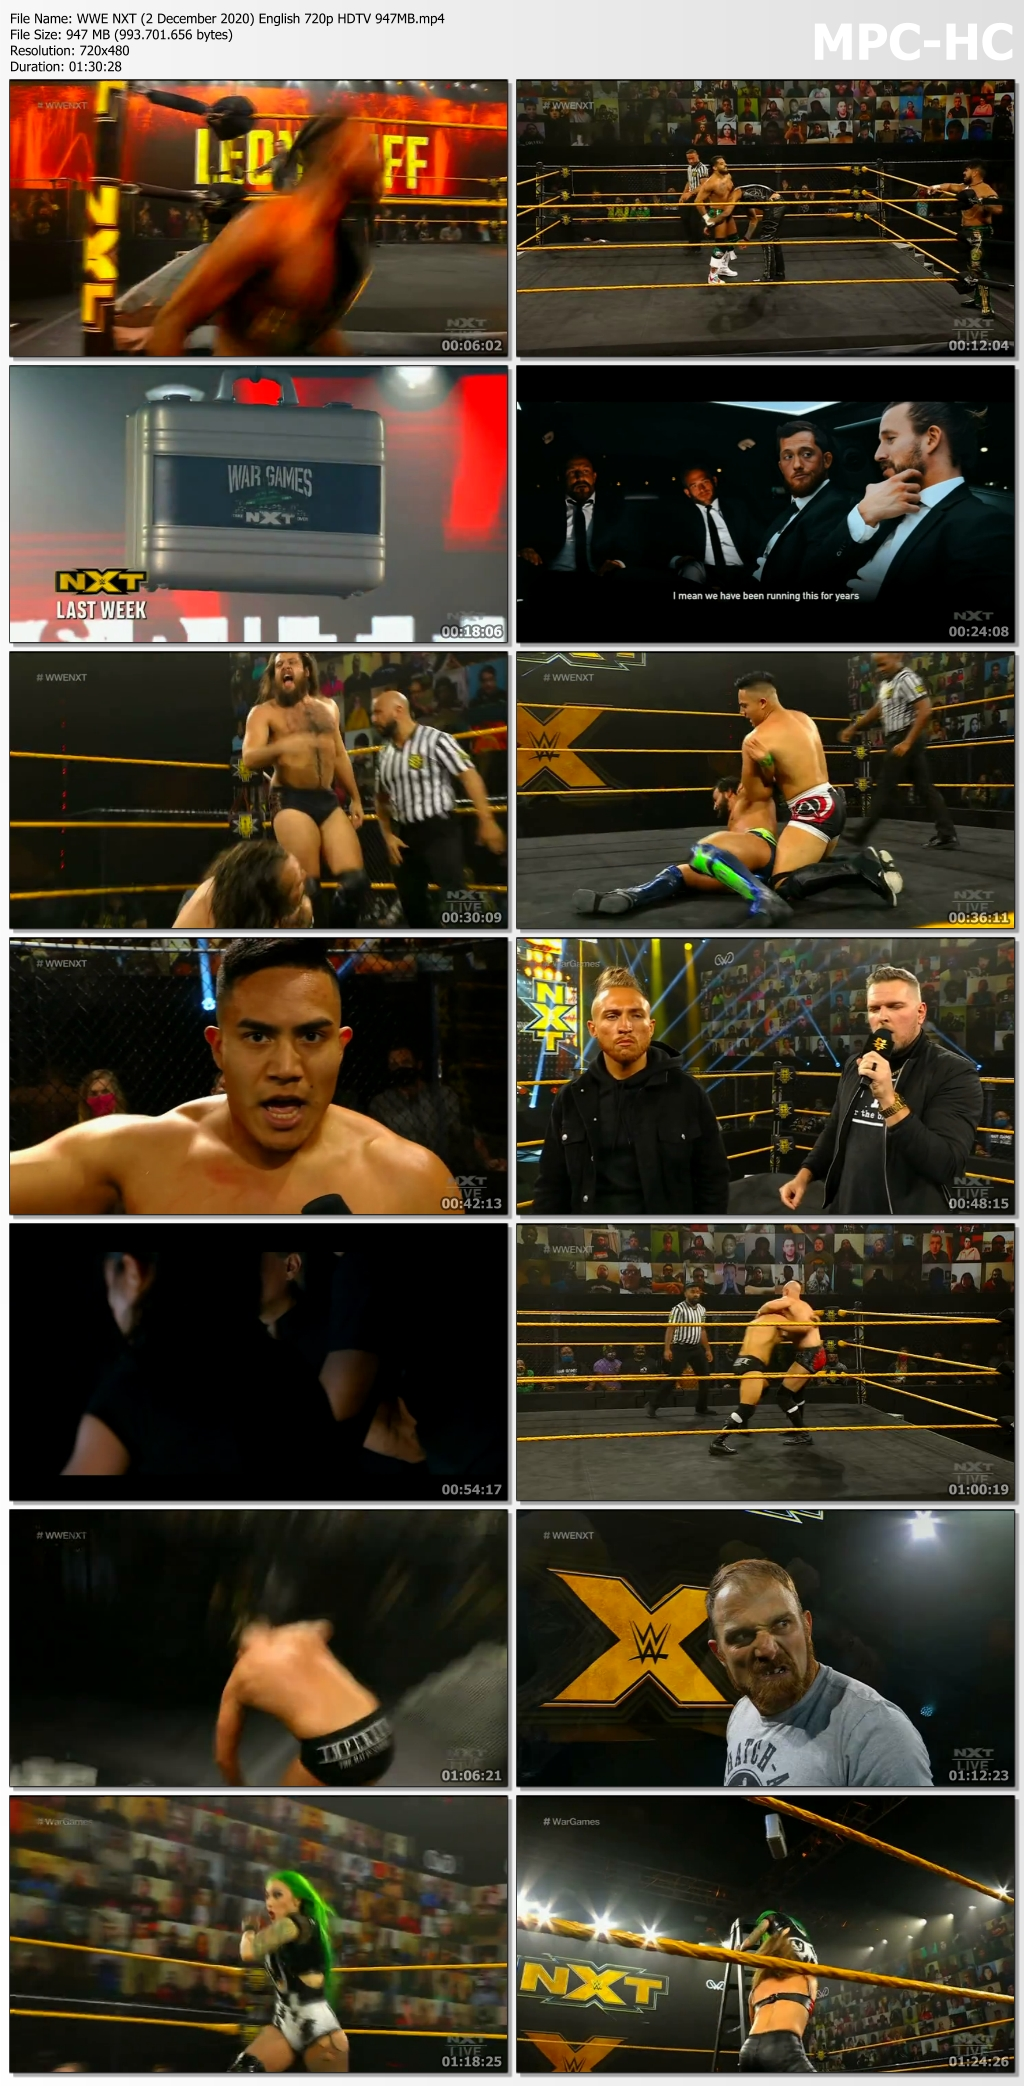 WWE-NXT-2-December-2020-English-720p-HDTV-947-MB-mp4-thumbs